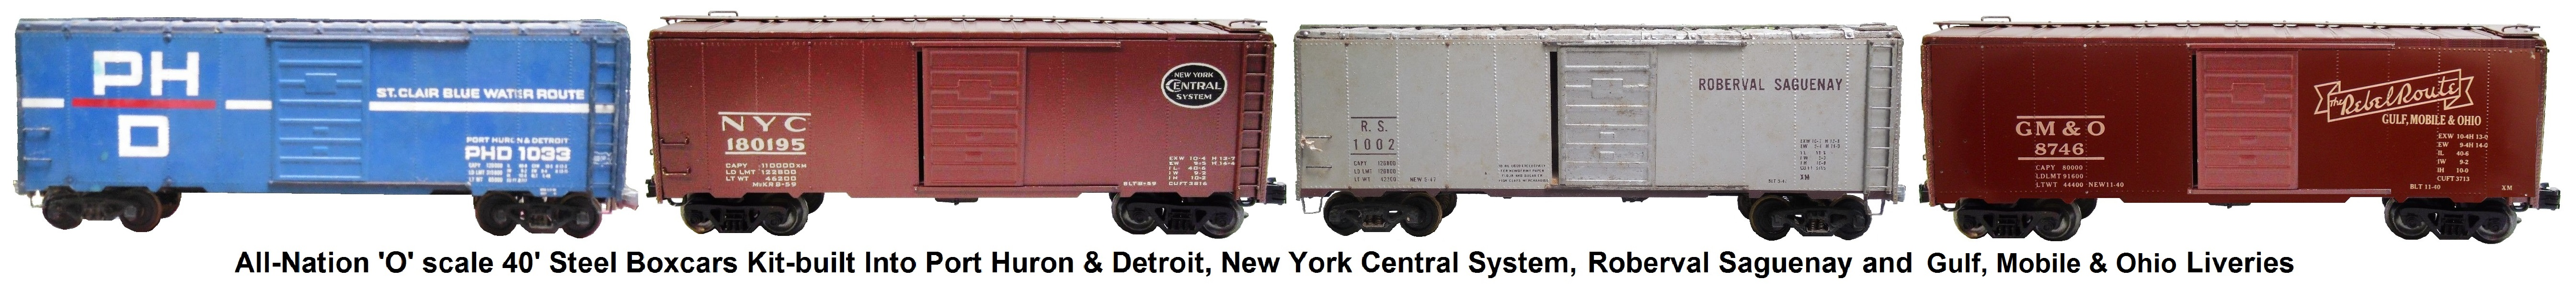 All-Nation 'O' scale 40' Steel Box Cars Kit-built into Port Huron & Detroit, New York Central, Roberval Saguenay and Gulf, Mobile & Ohio Liveries